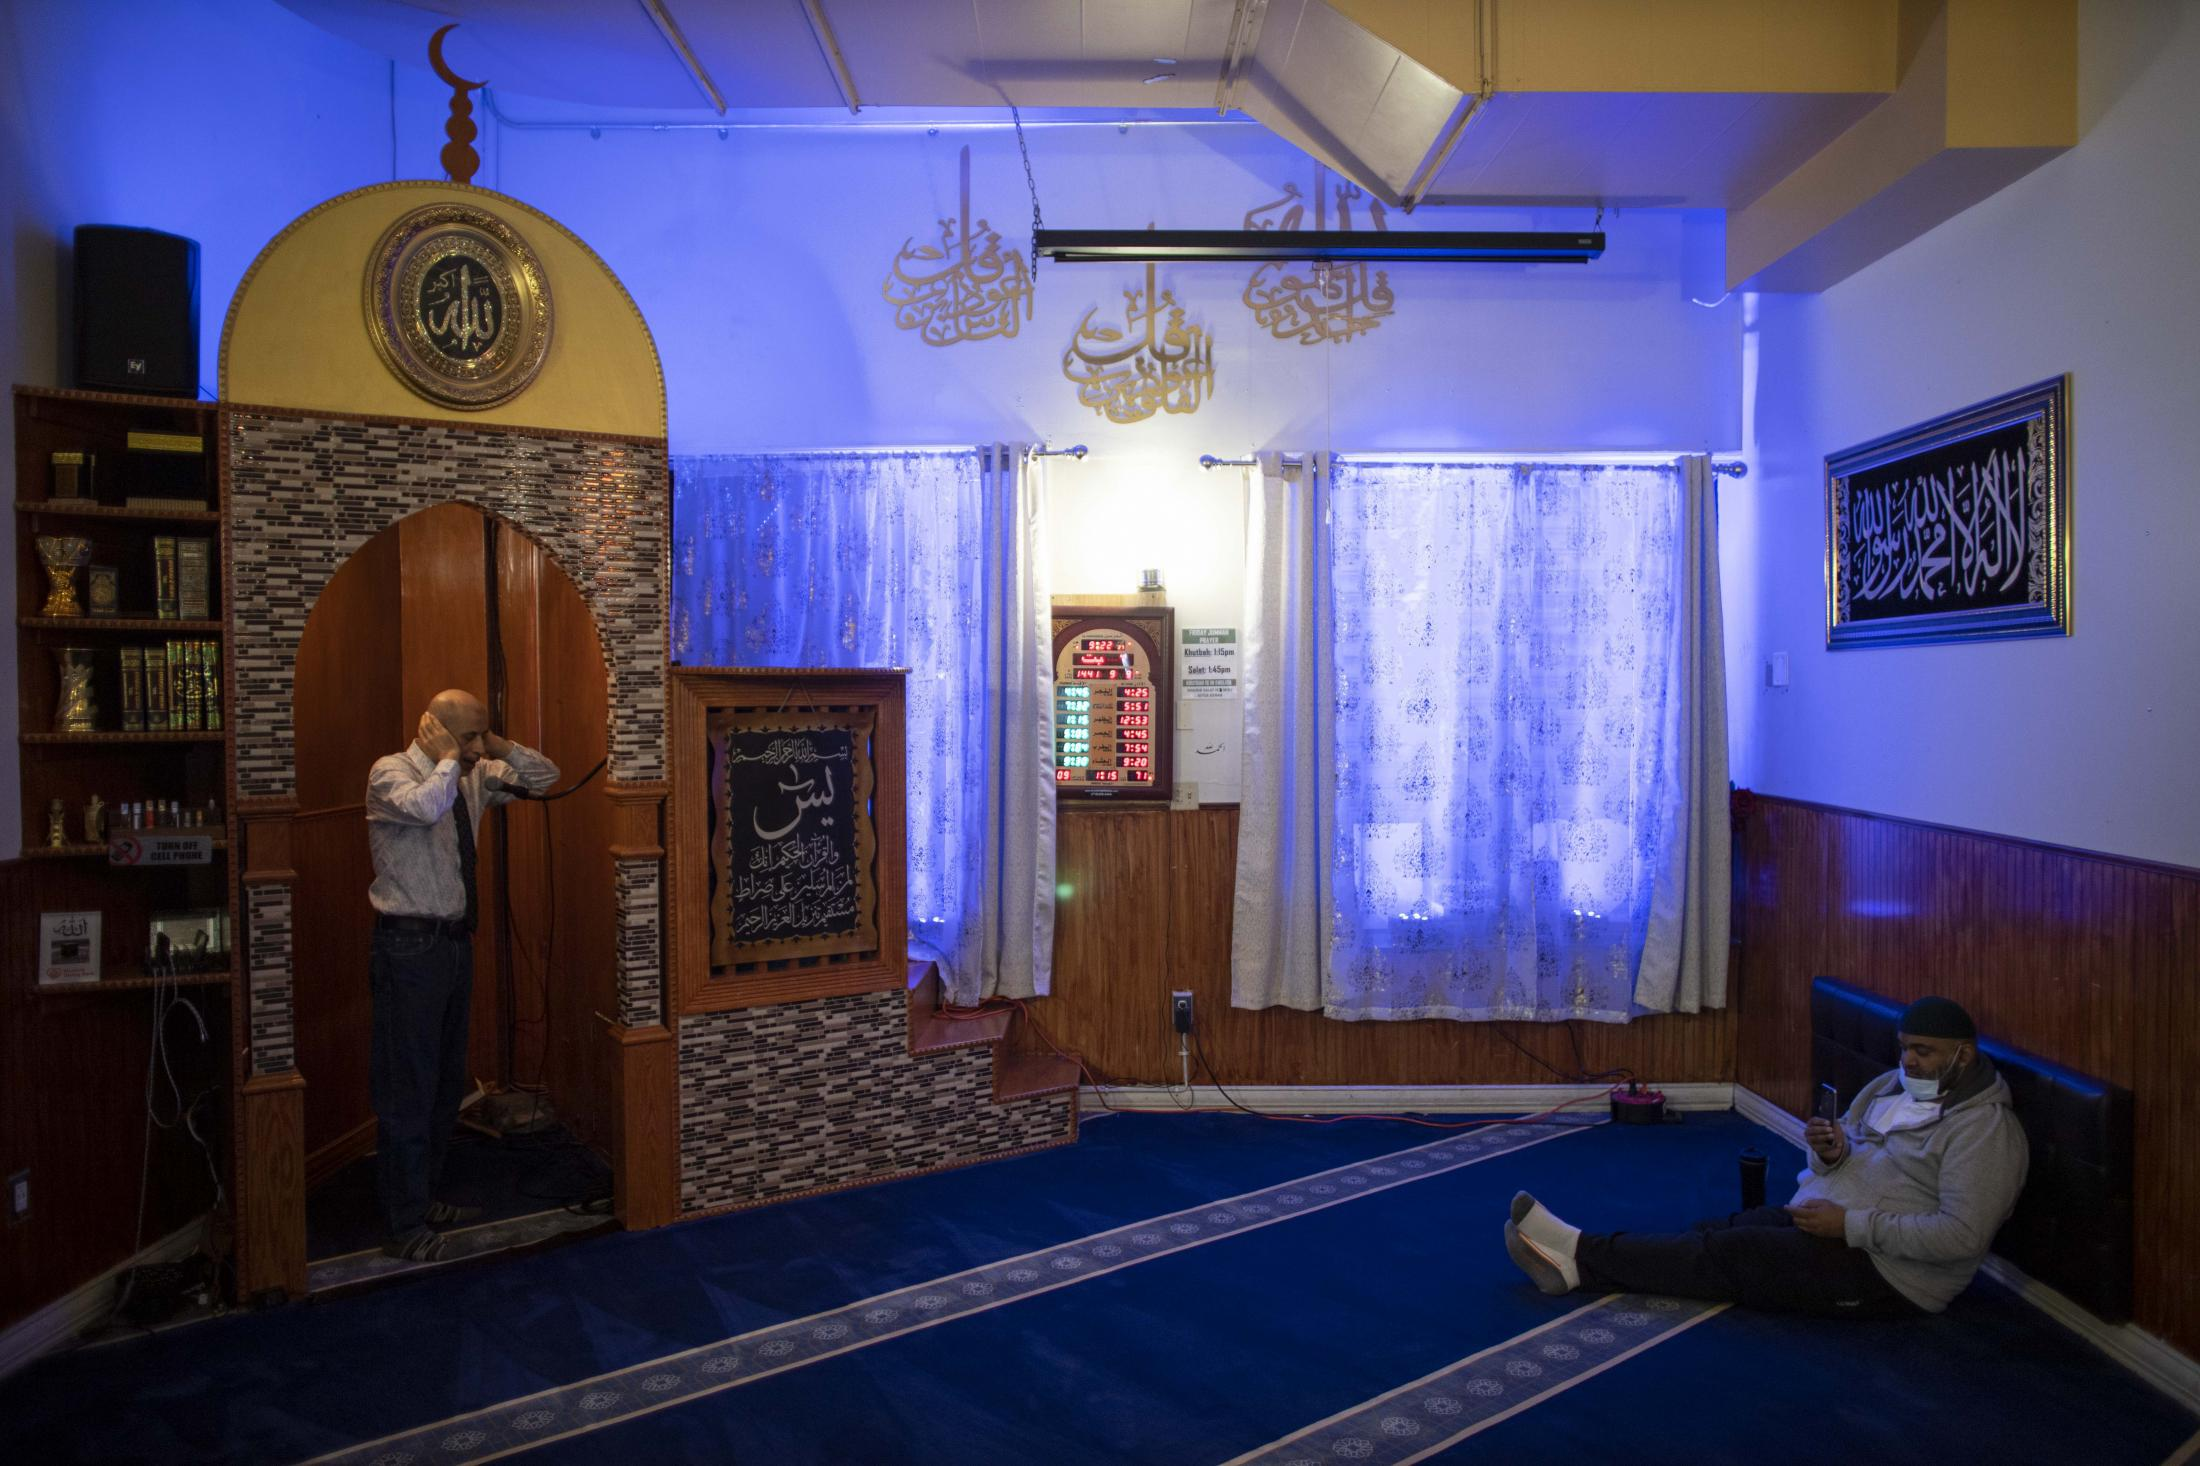 As Mosque remains closed to public, a volunteer calls for Isha prayer in the Muslim community center of Brooklyn, New York.